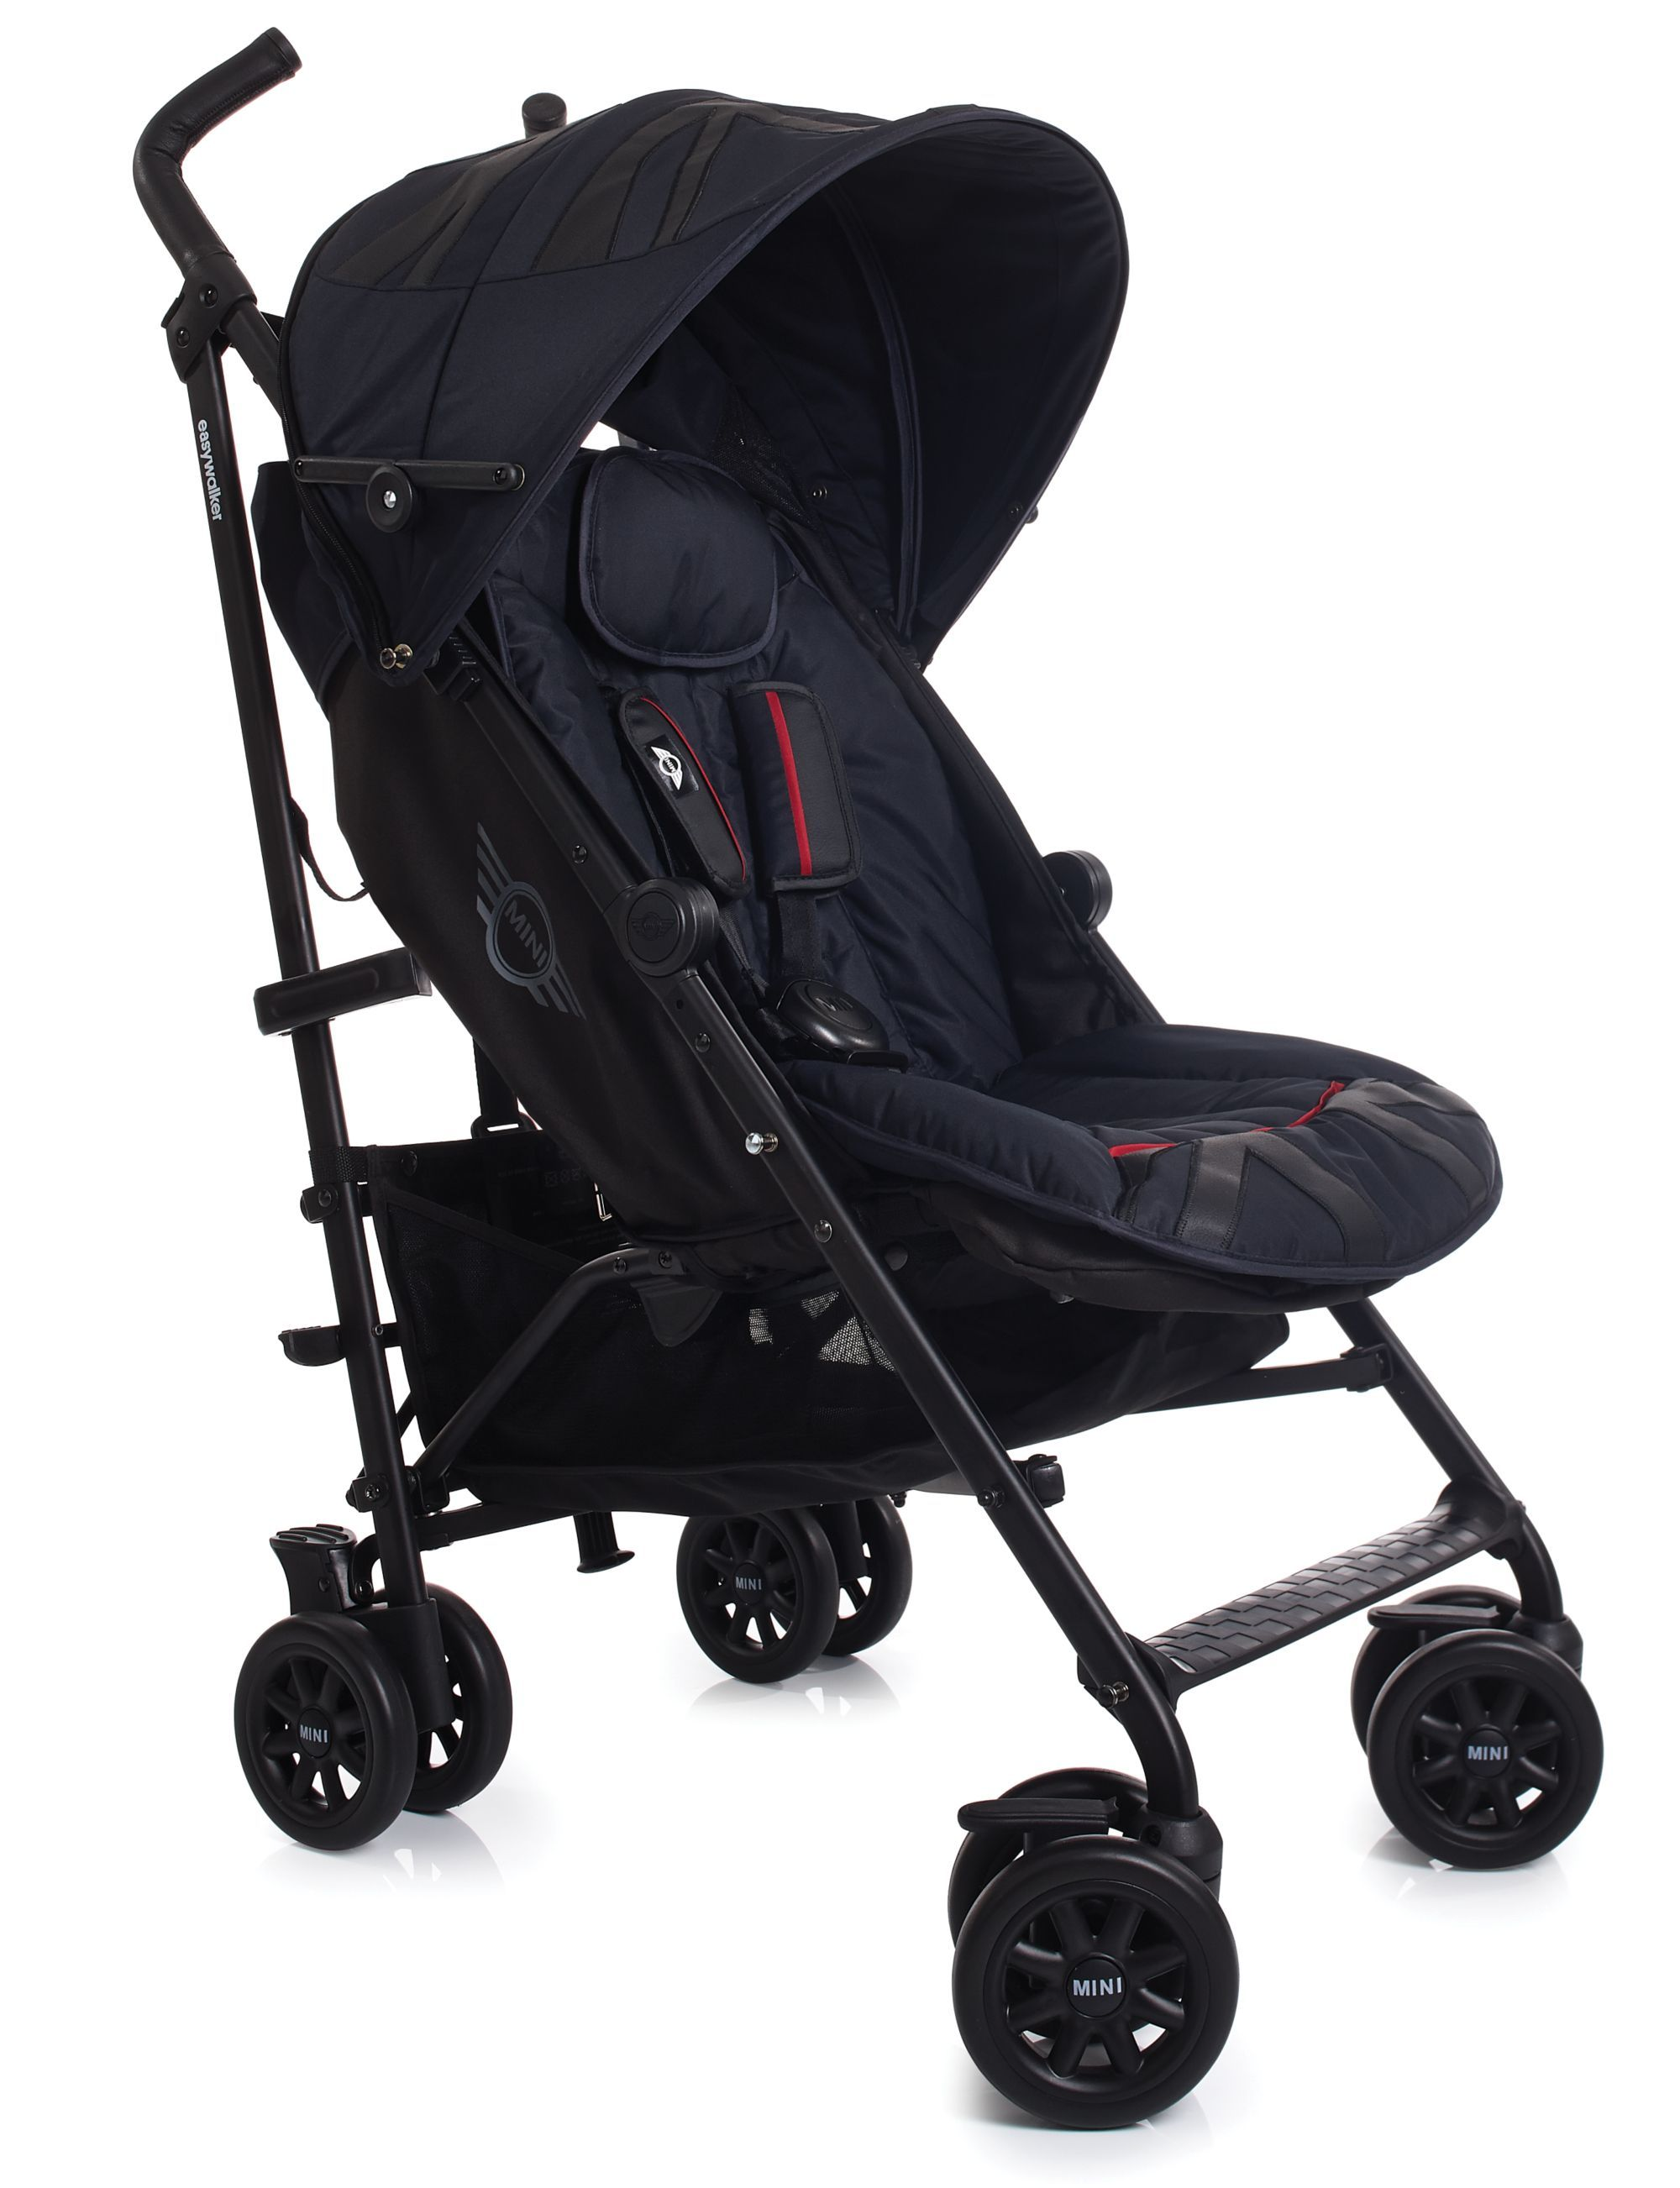 nursery bedding Baby buggy, Baby strollers, Baby car seats